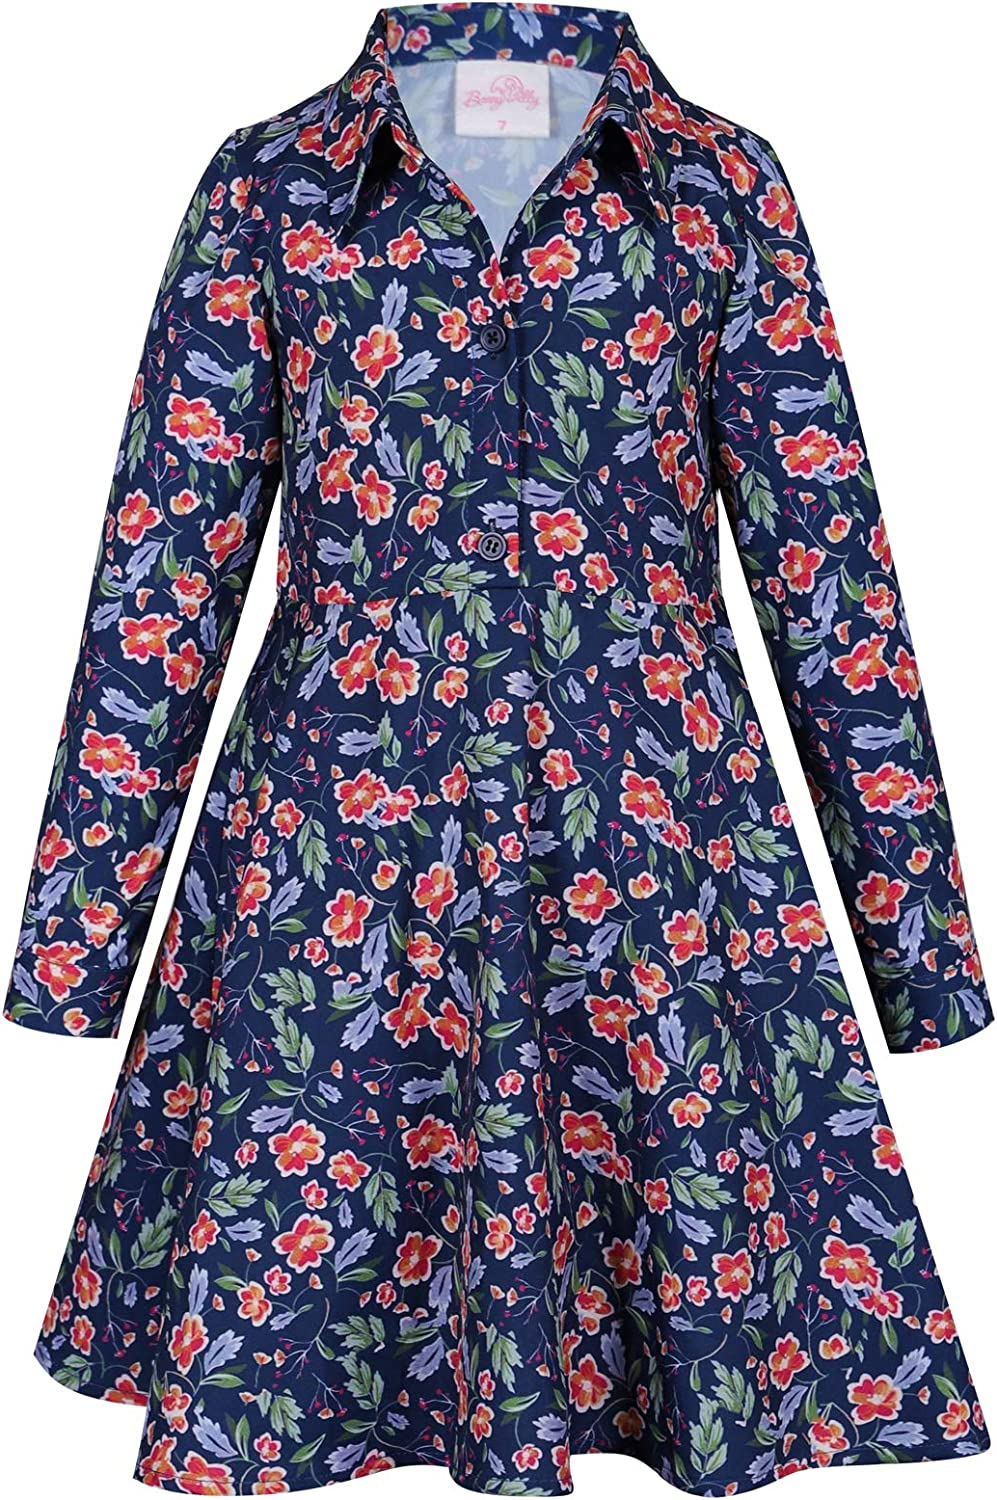 Bonny Billy Girl's Classic Collar Button Down Printed Shirt Dress with Long Sleeves